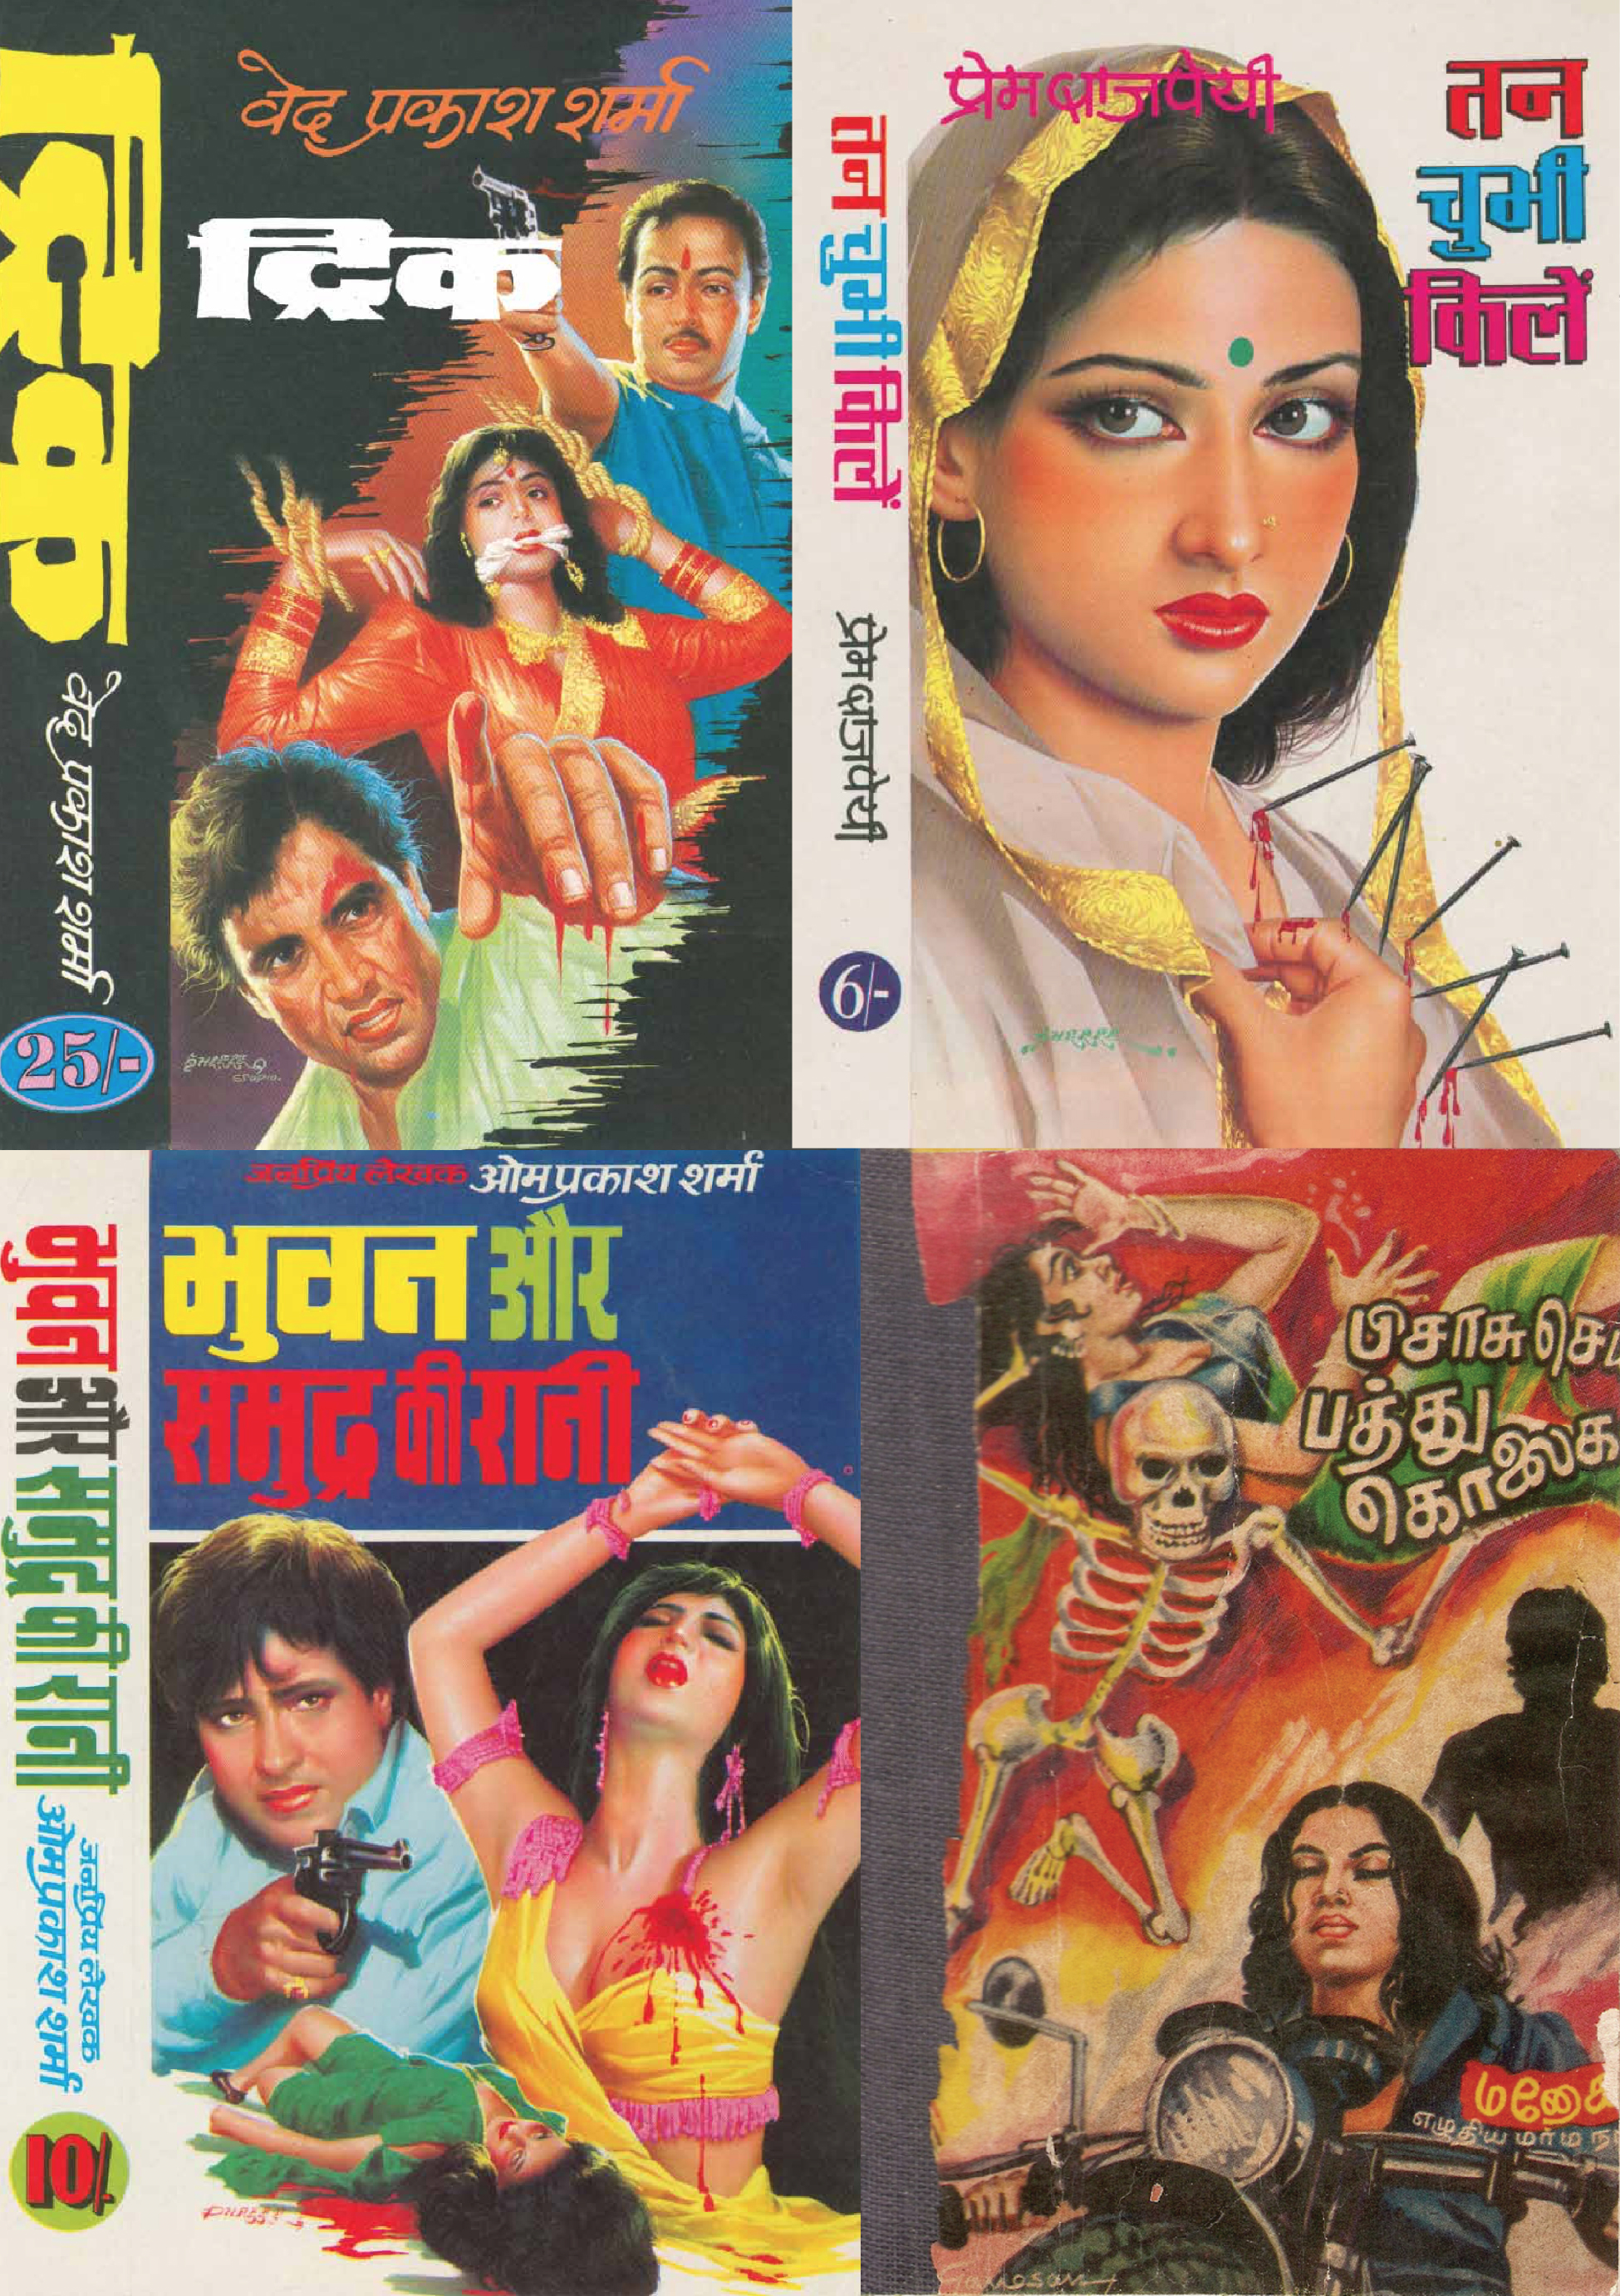 Covers of existing pulp publications sold in India